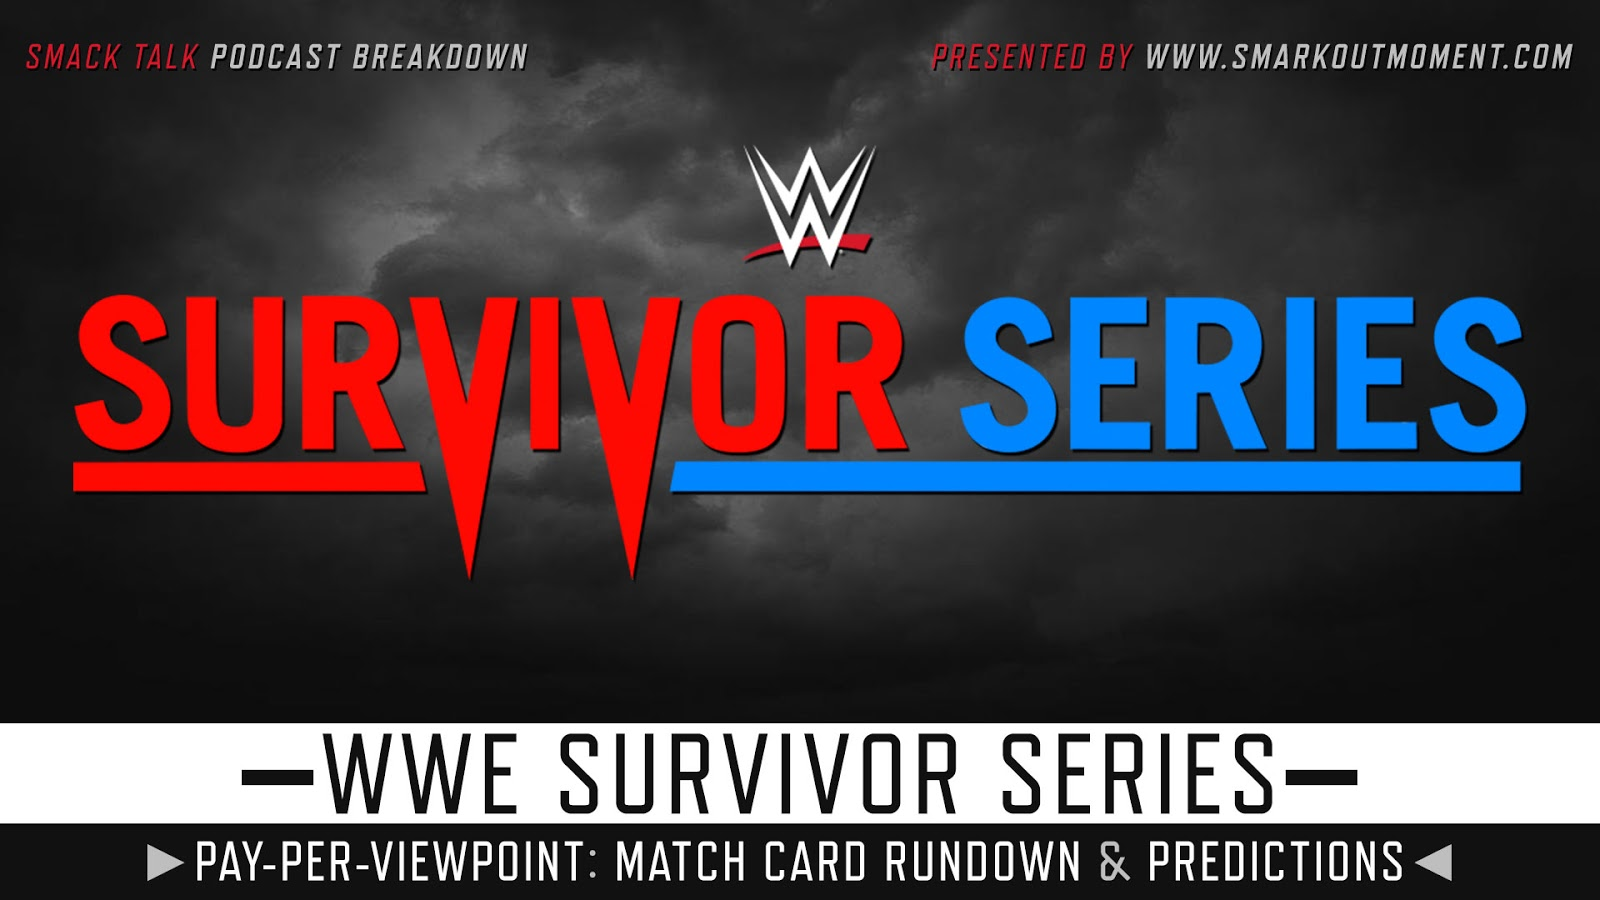 WWE Survivor Series 2018 spoilers podcast